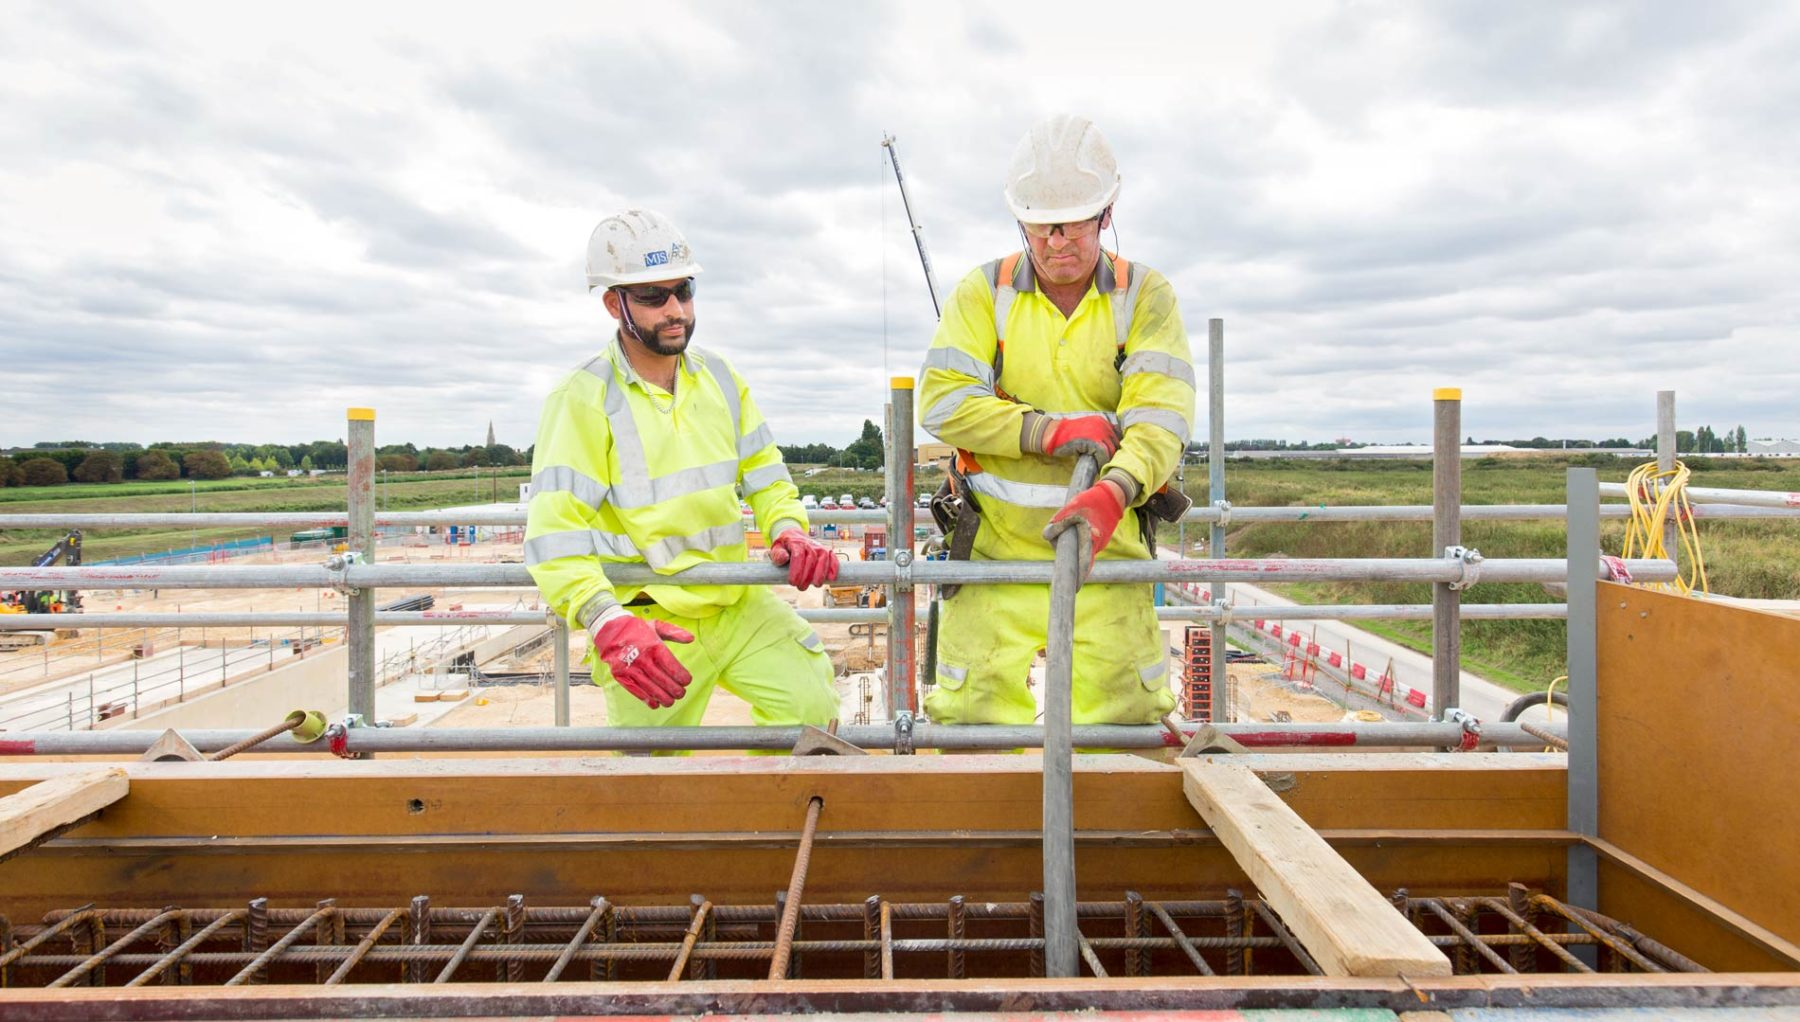 Two construction site workers in yellow high viz poring concrete to blast wall construction